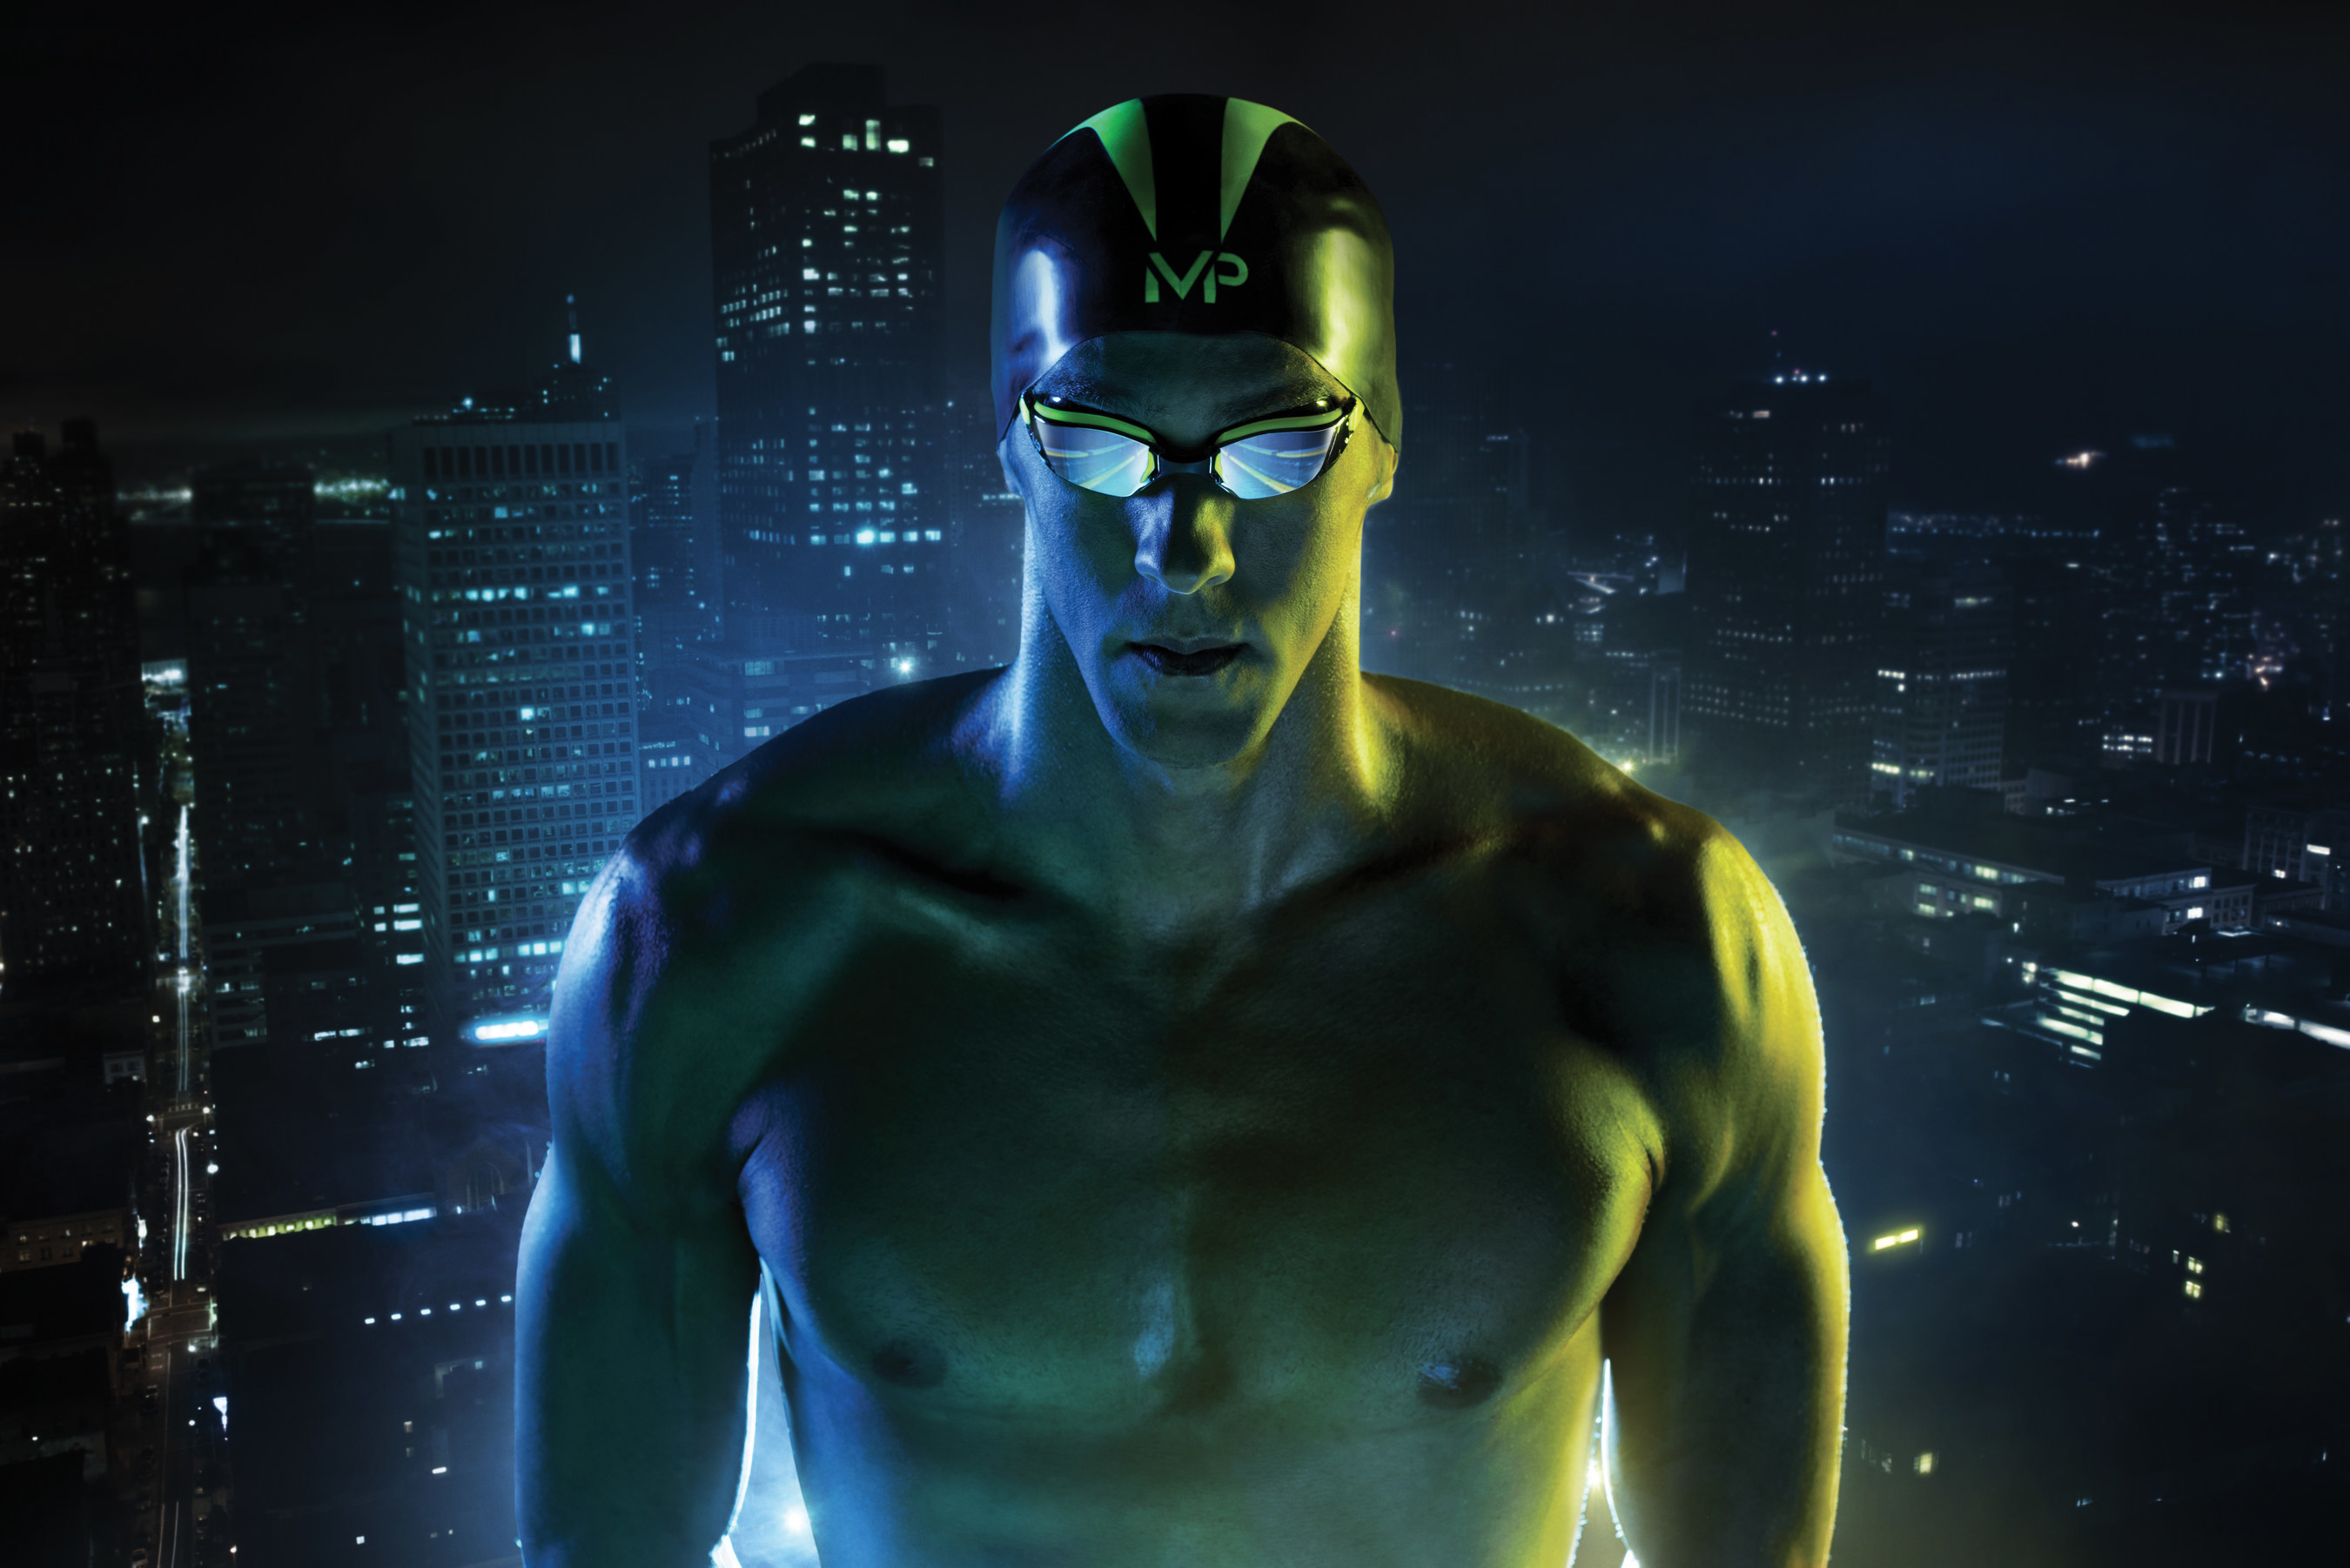 New XCEED goggles by MP Michael Phelps, designed by Aqua Sphere